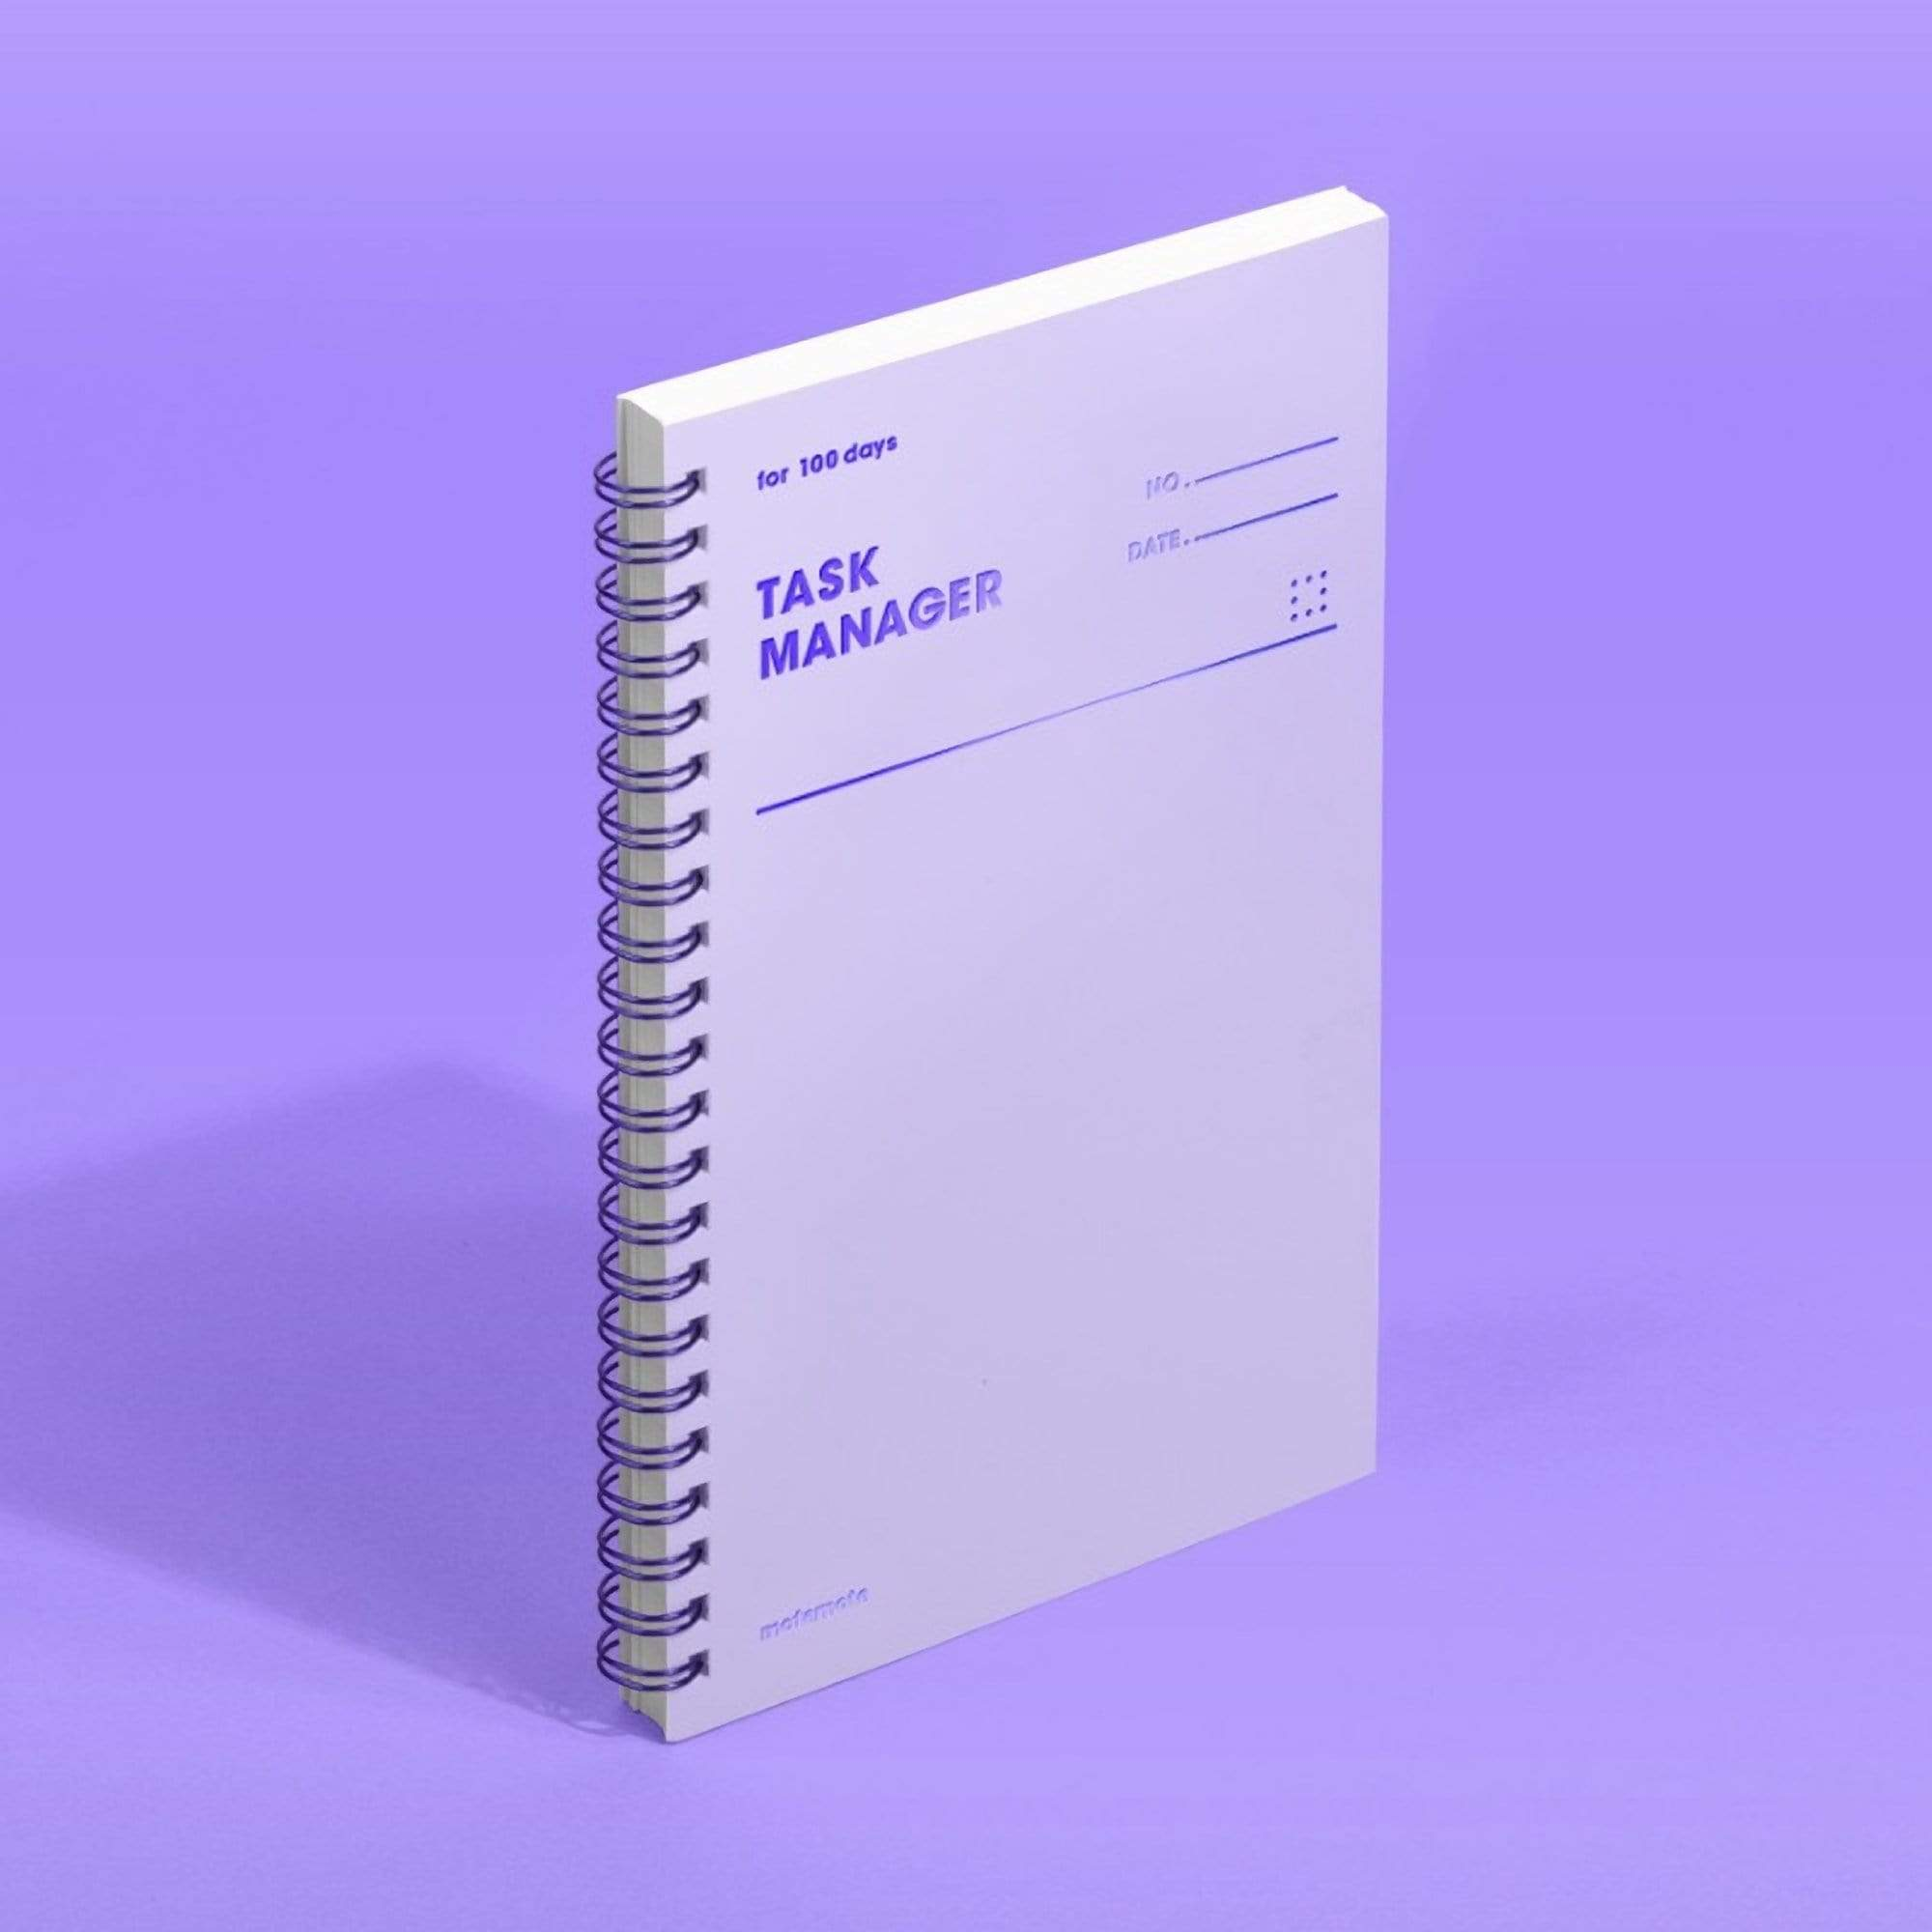 MOTEMOTE Violet Task Manager Planner | 100 Days - USA located! - The Stationery Life!